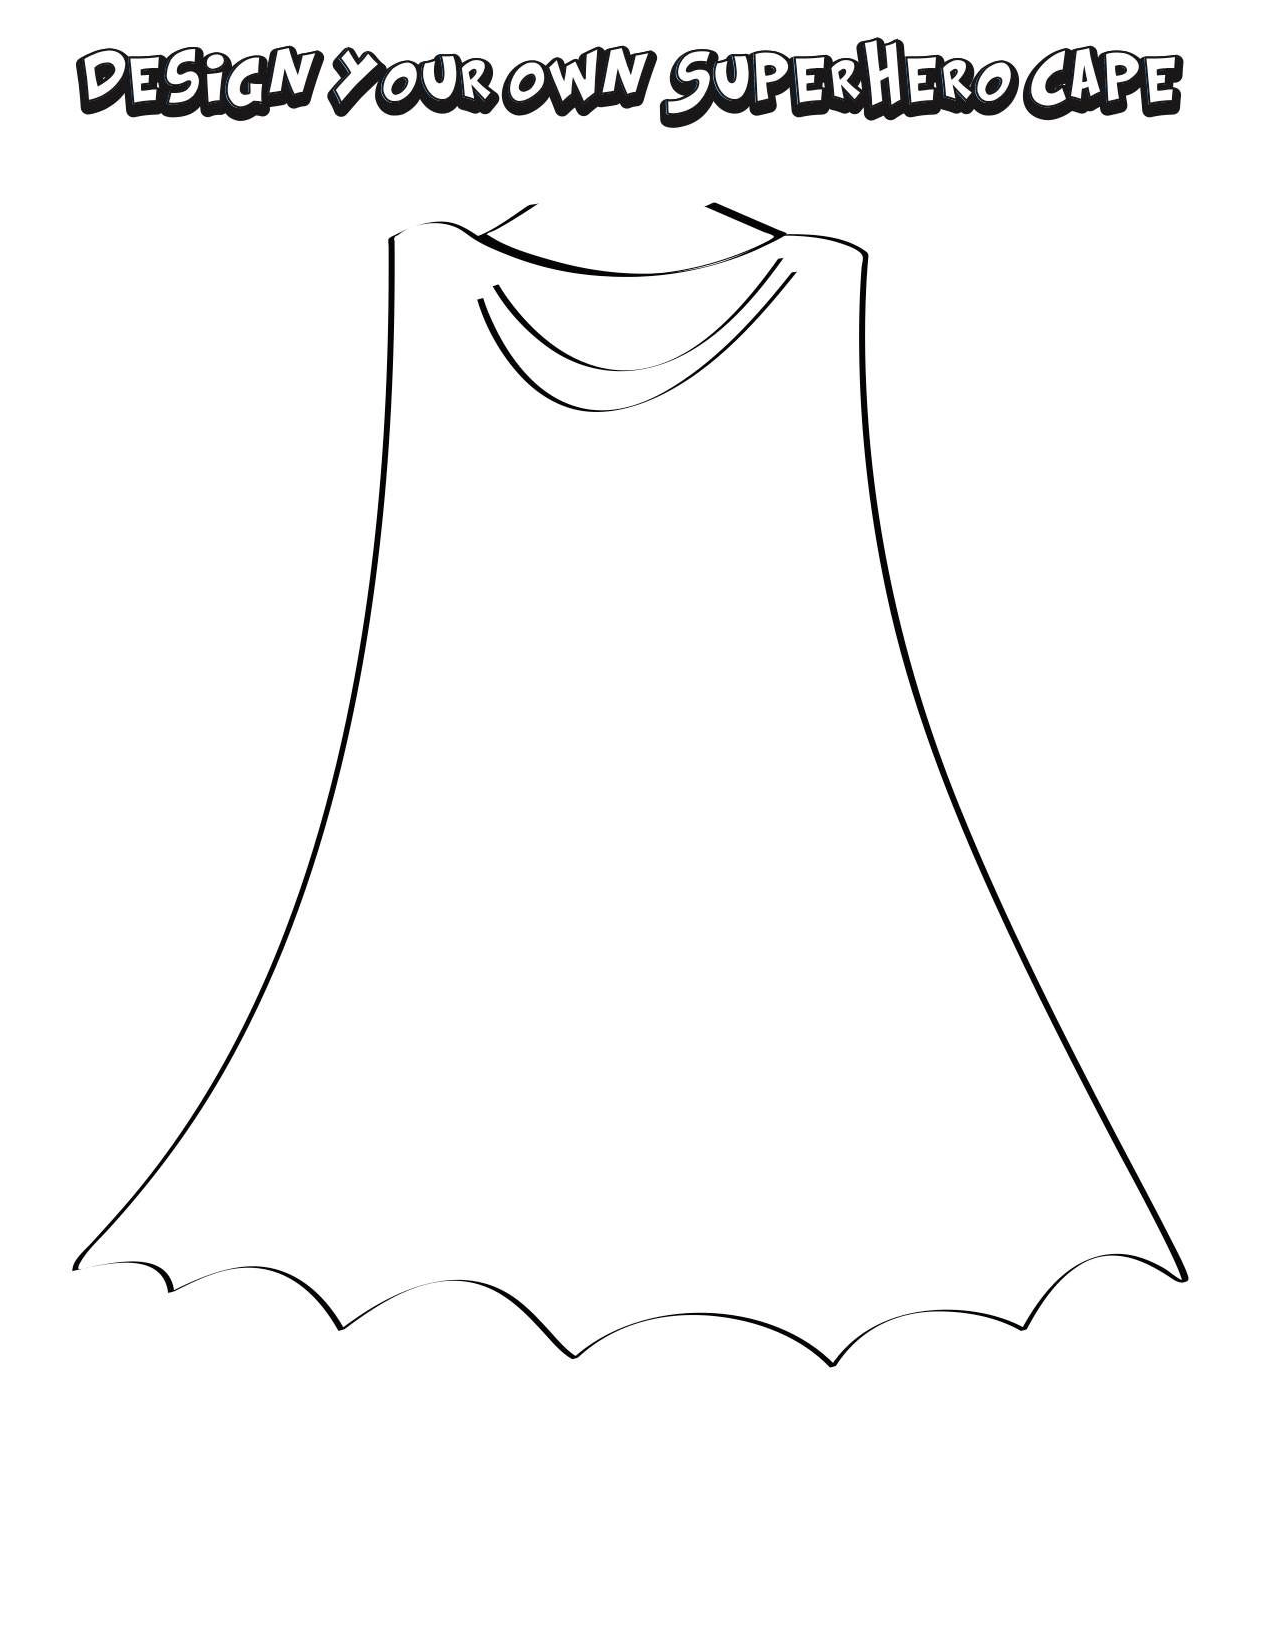 Design Your Own Super Hero Cape